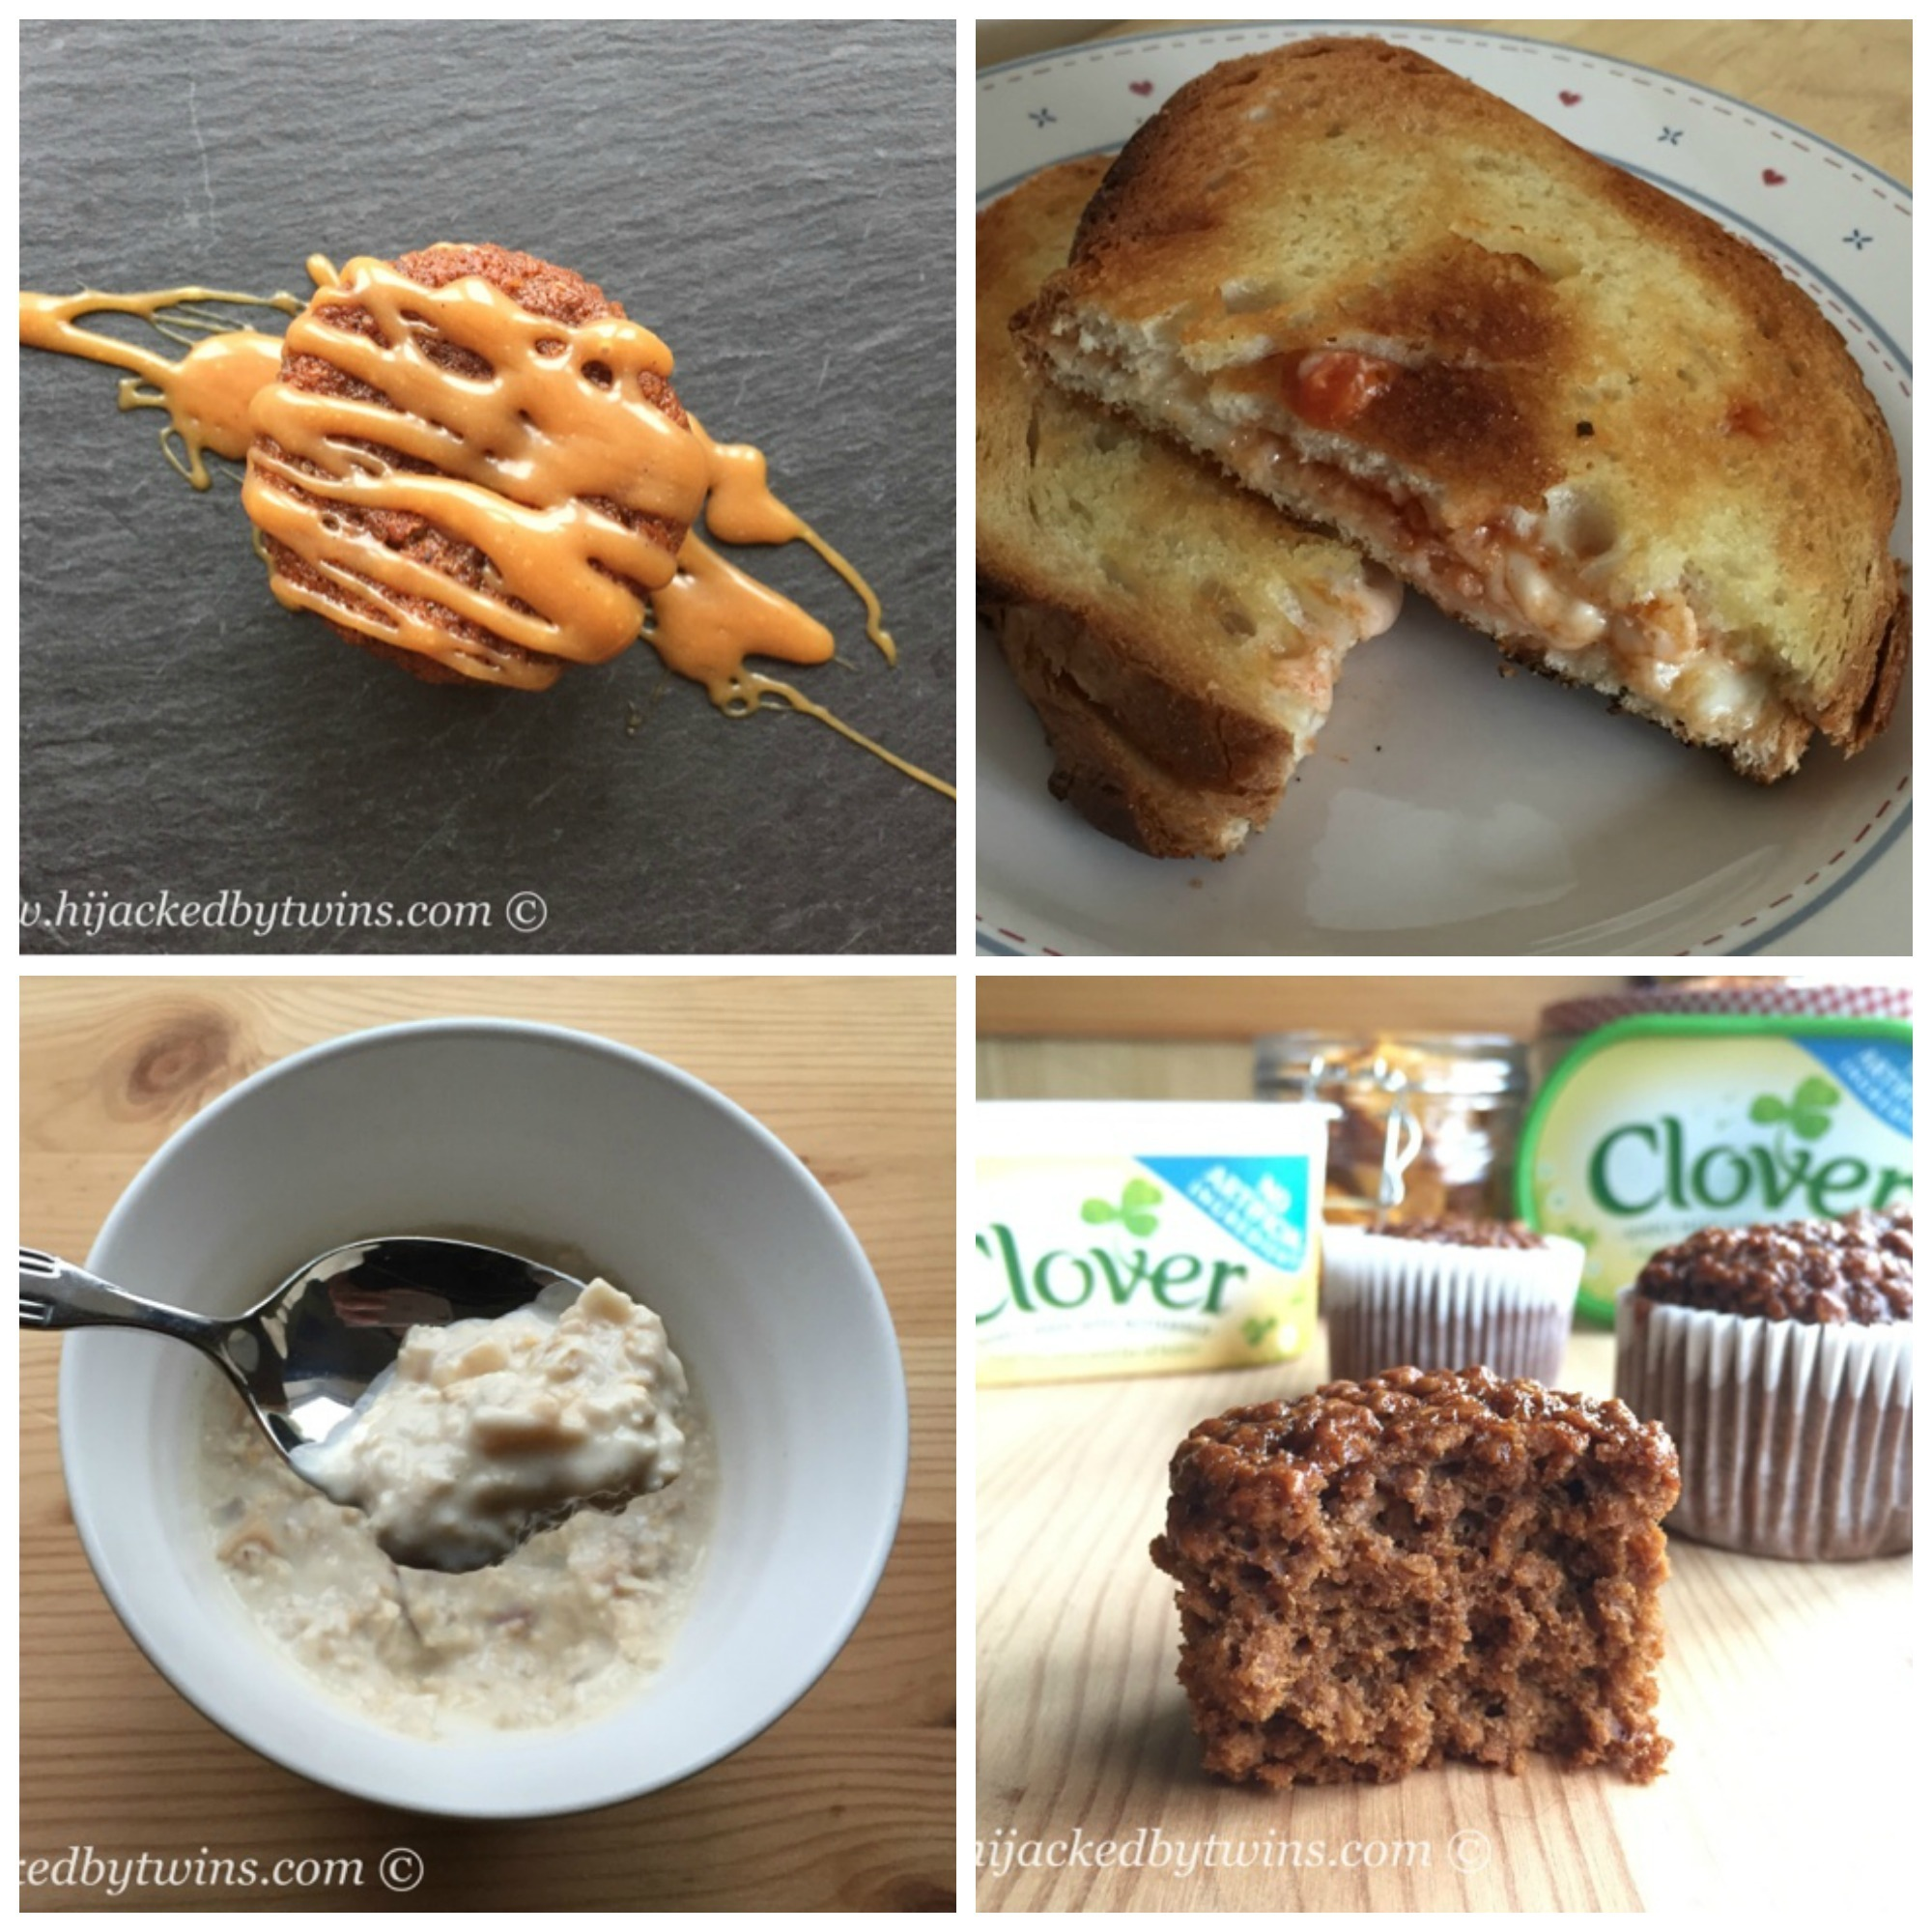 Weekly Meal Plan - Week Commencing 9th November 2015